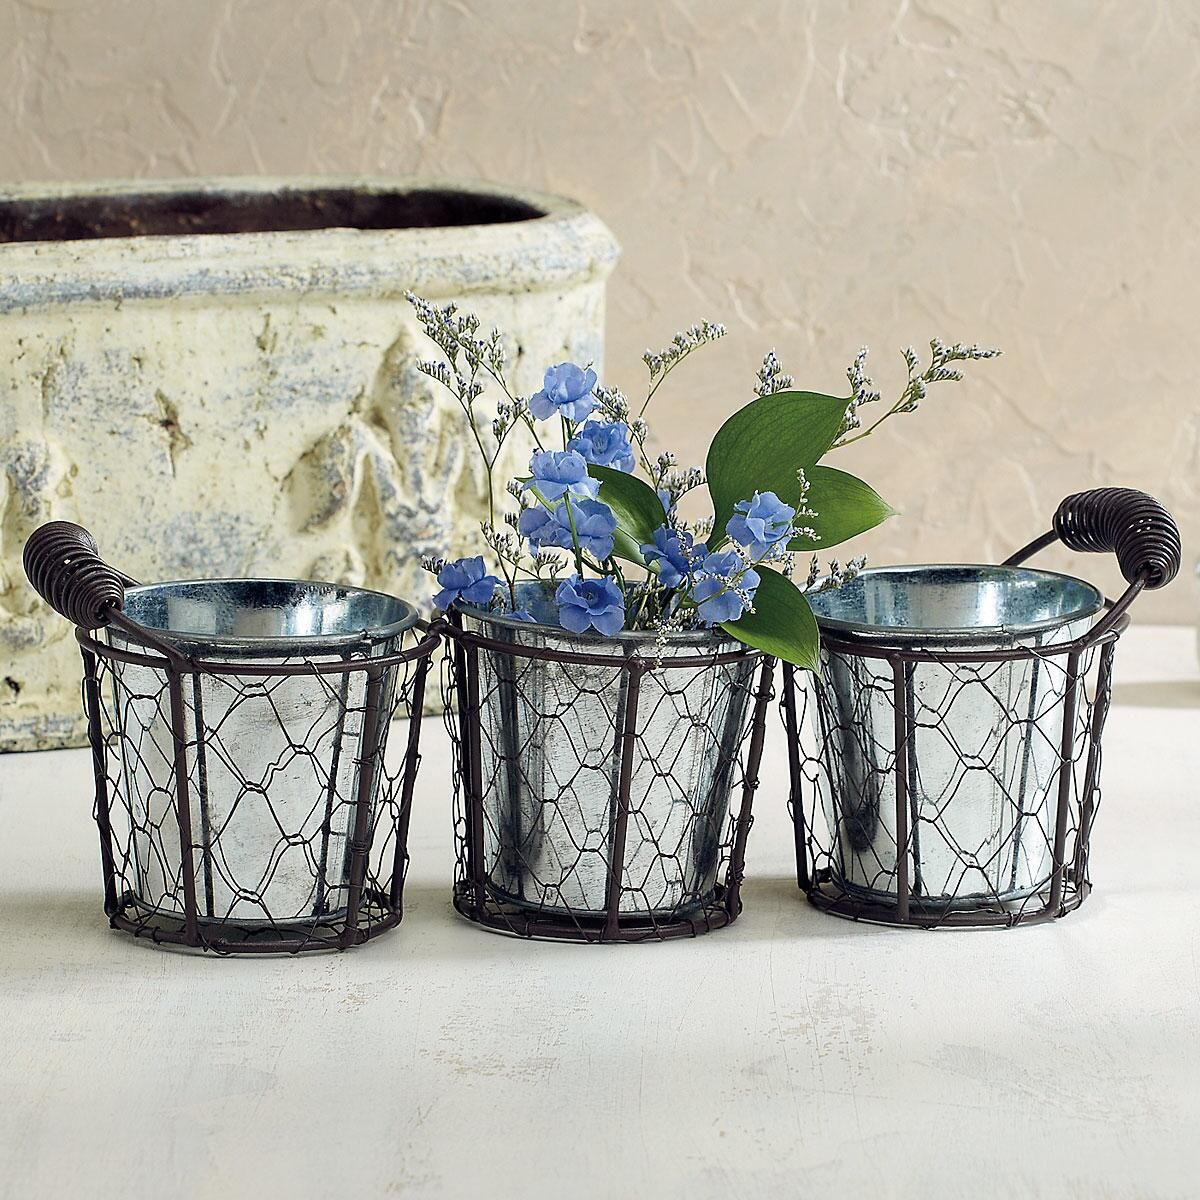 Triple Round Mesh Basket with Handles